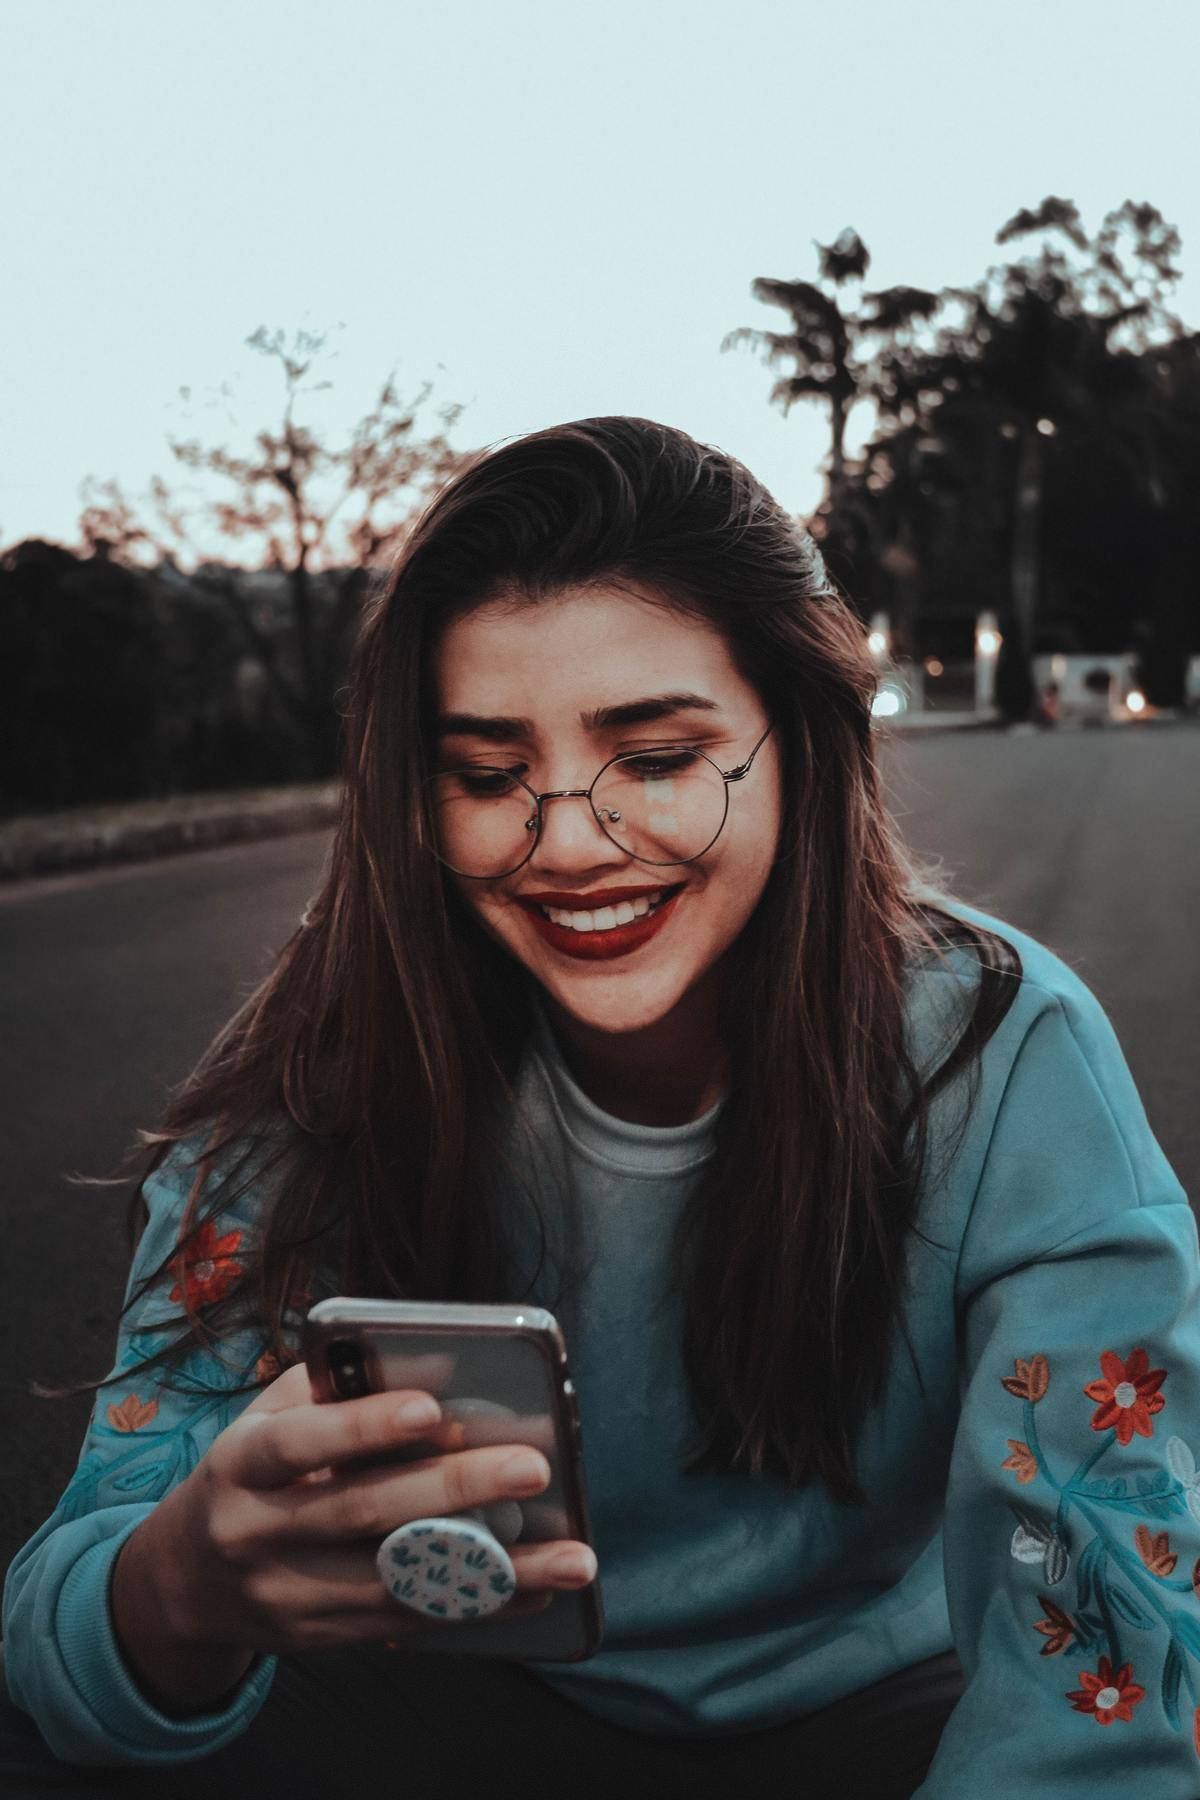 a woman looking down at her phone smiling